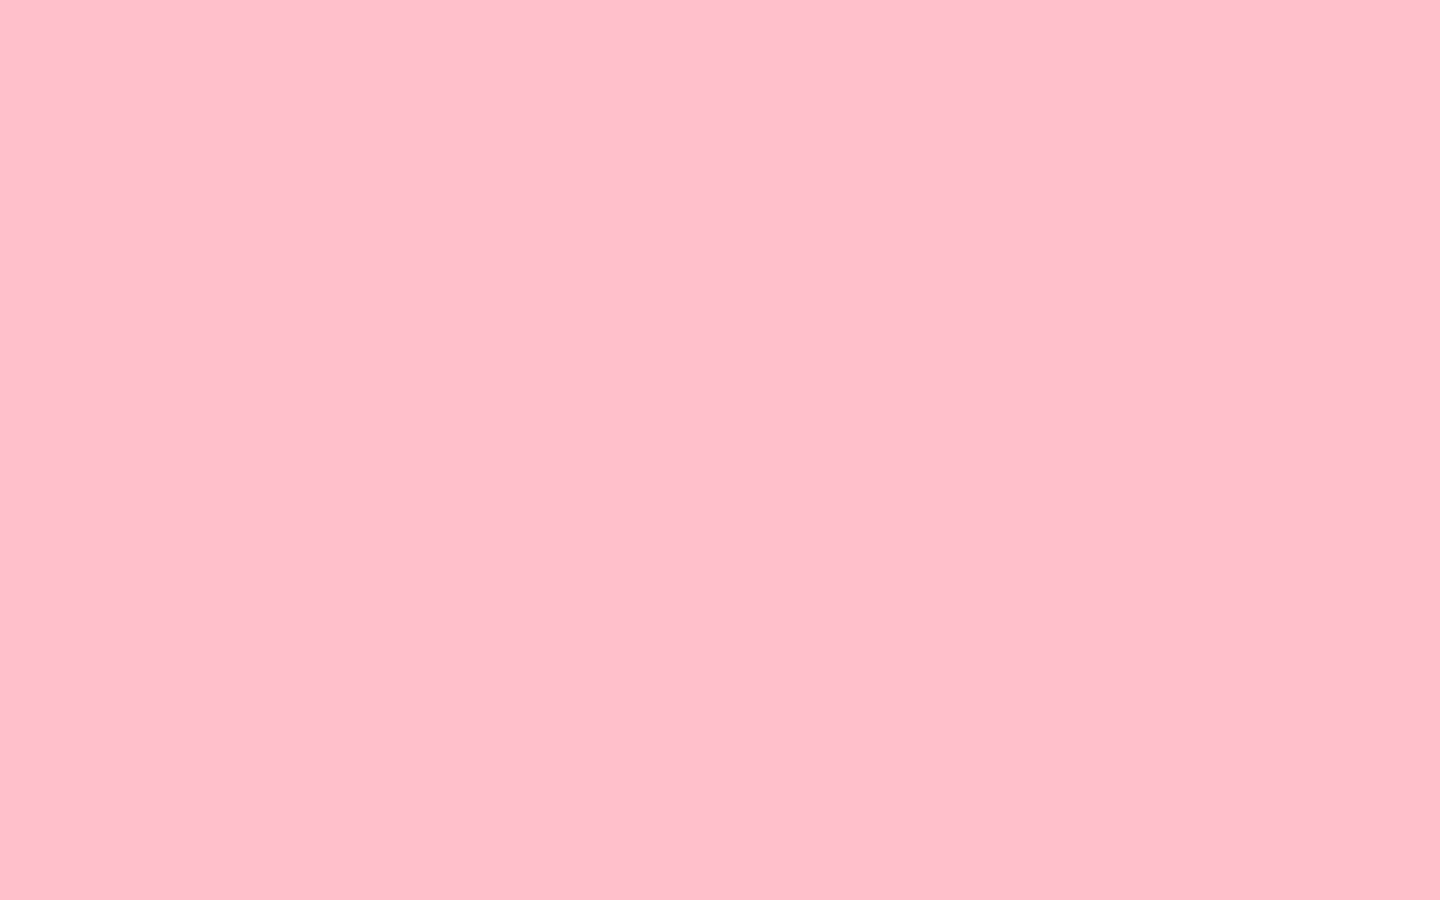 1440x900 Pink Solid Color Background